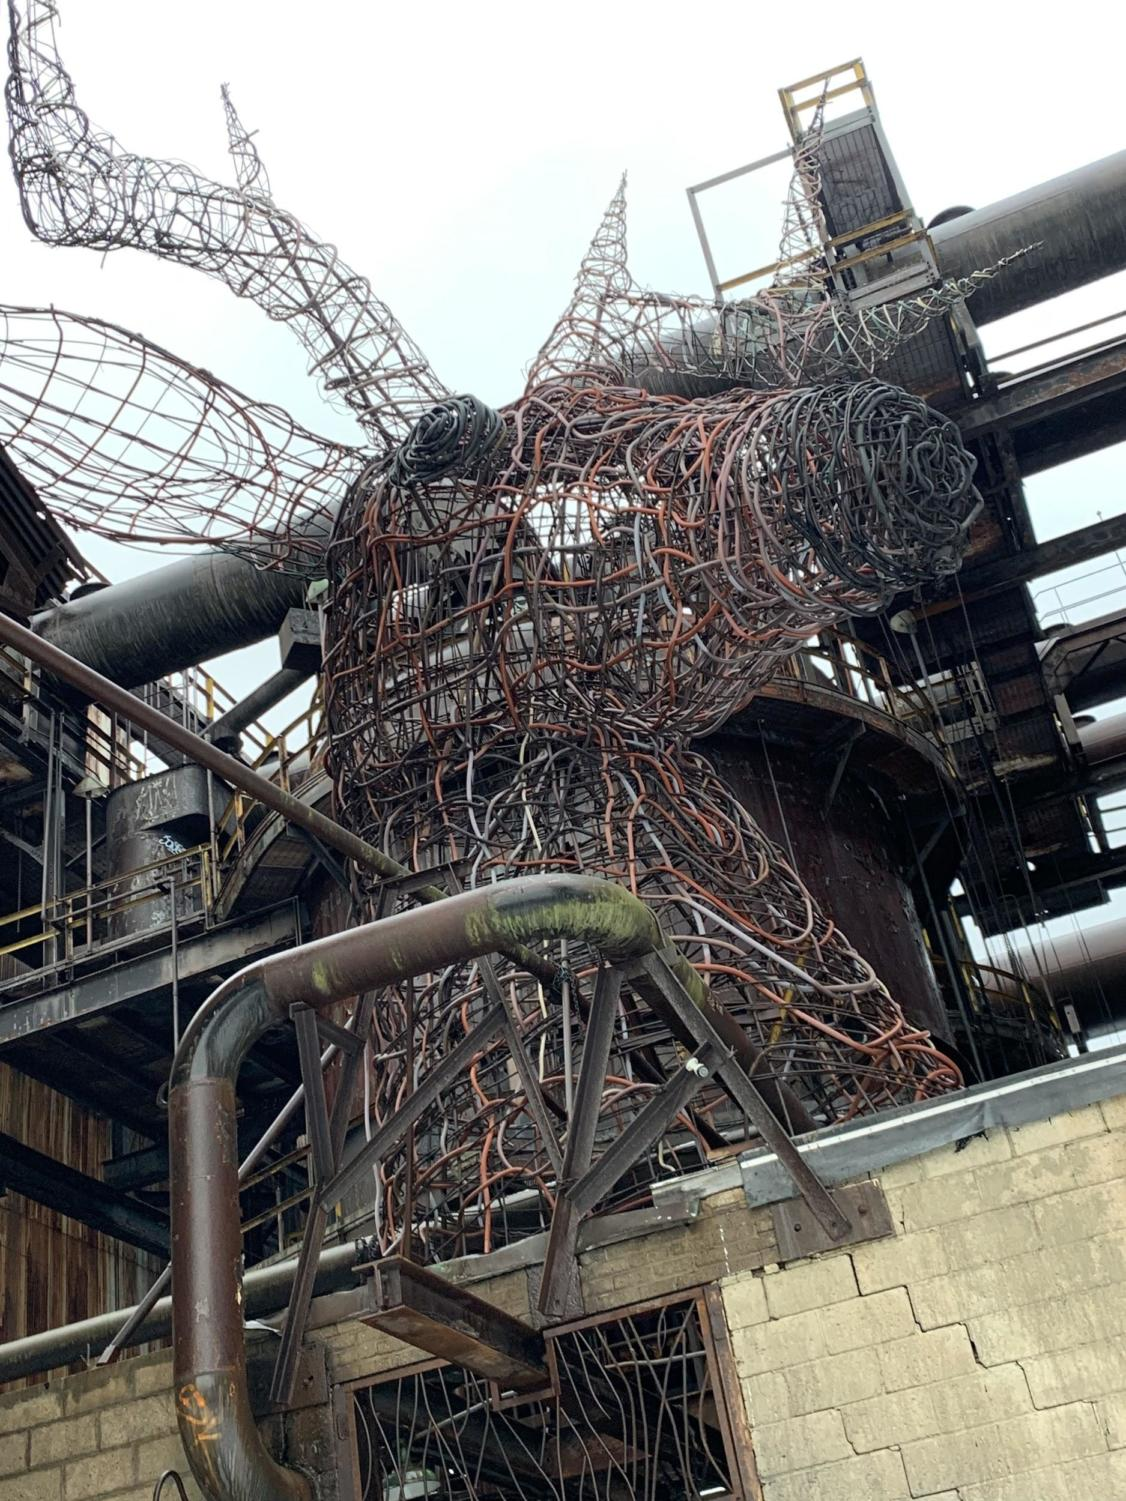 Art installations, like the deer head featured here, are revitalizing the abandoned Carrie Furnace, along with walls of legal graffiti.